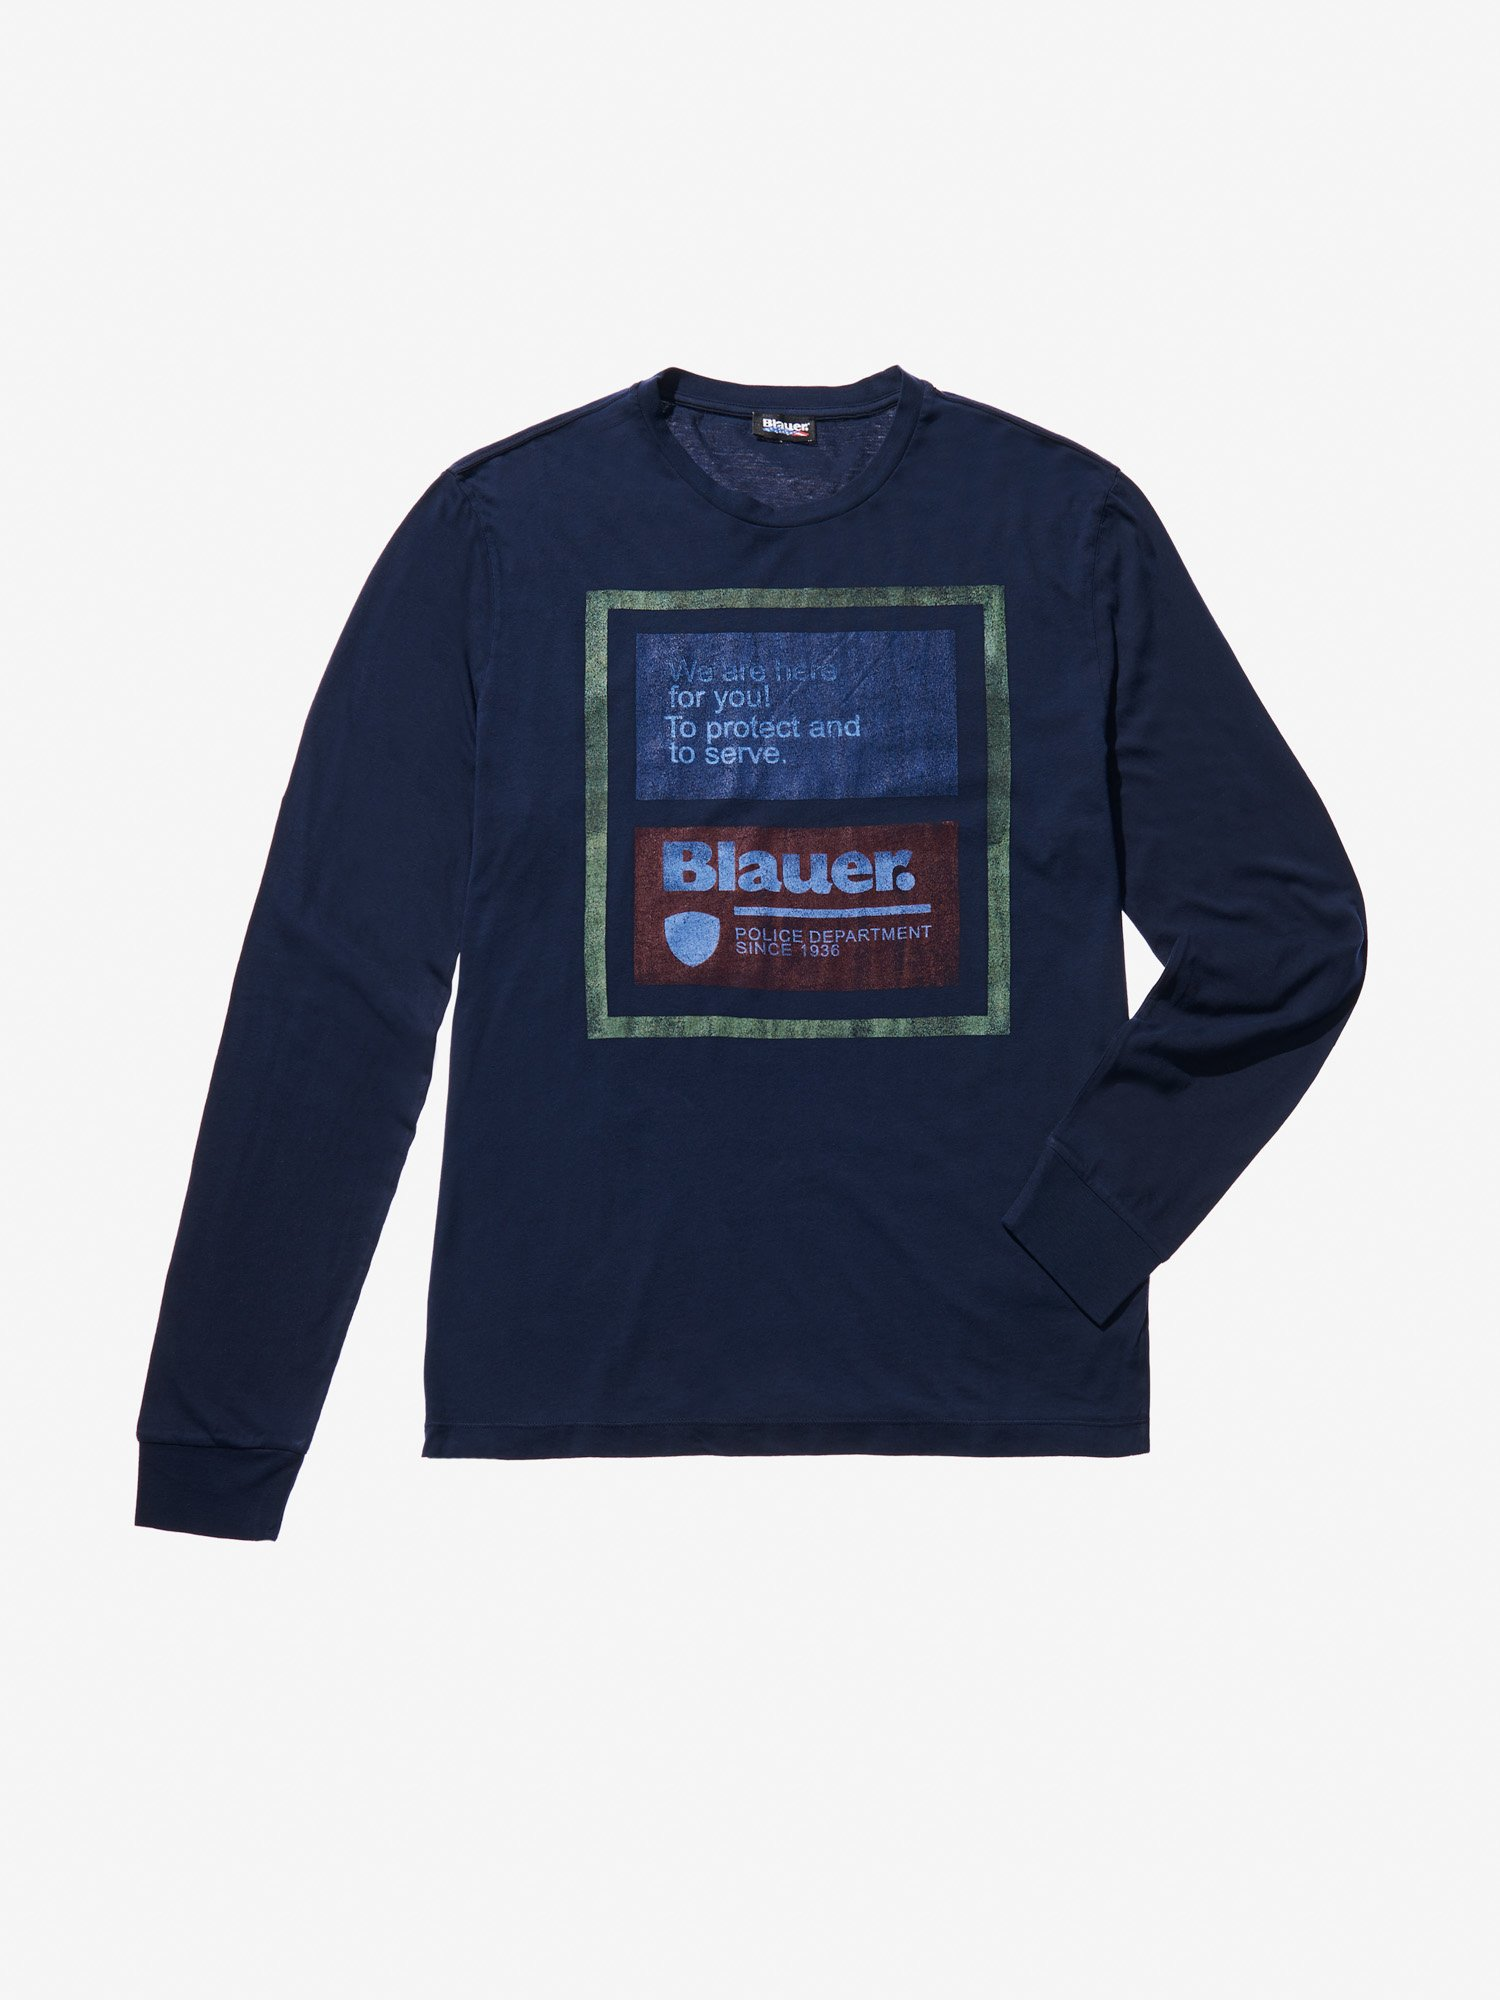 PROTECT AND SERVE SWEATER - Blauer